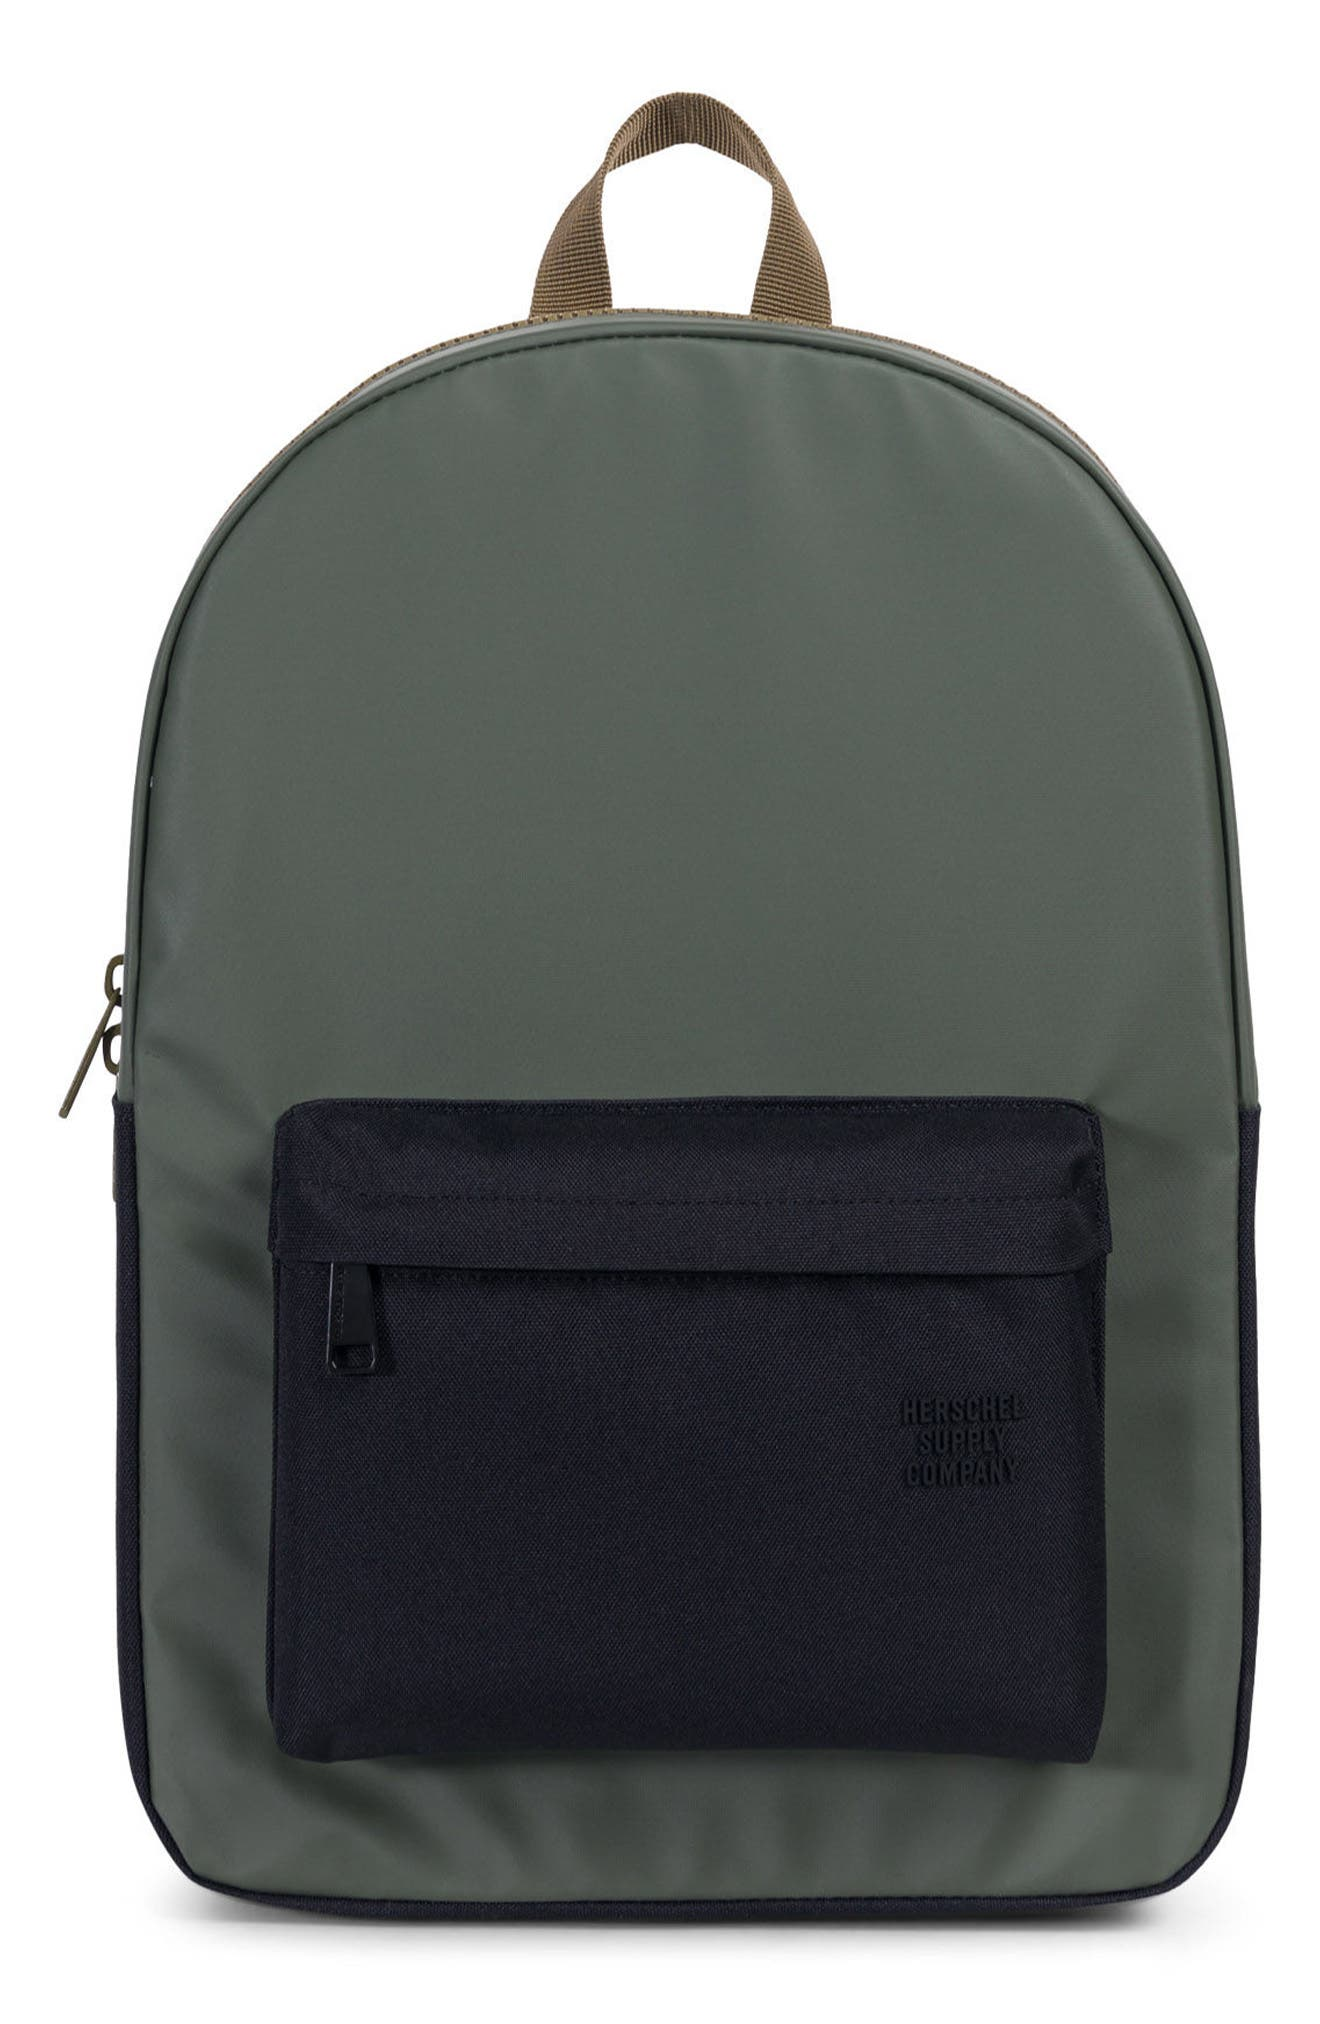 Winlaw Studio Backpack,                             Main thumbnail 1, color,                             Beetle Black/ Goth Olive